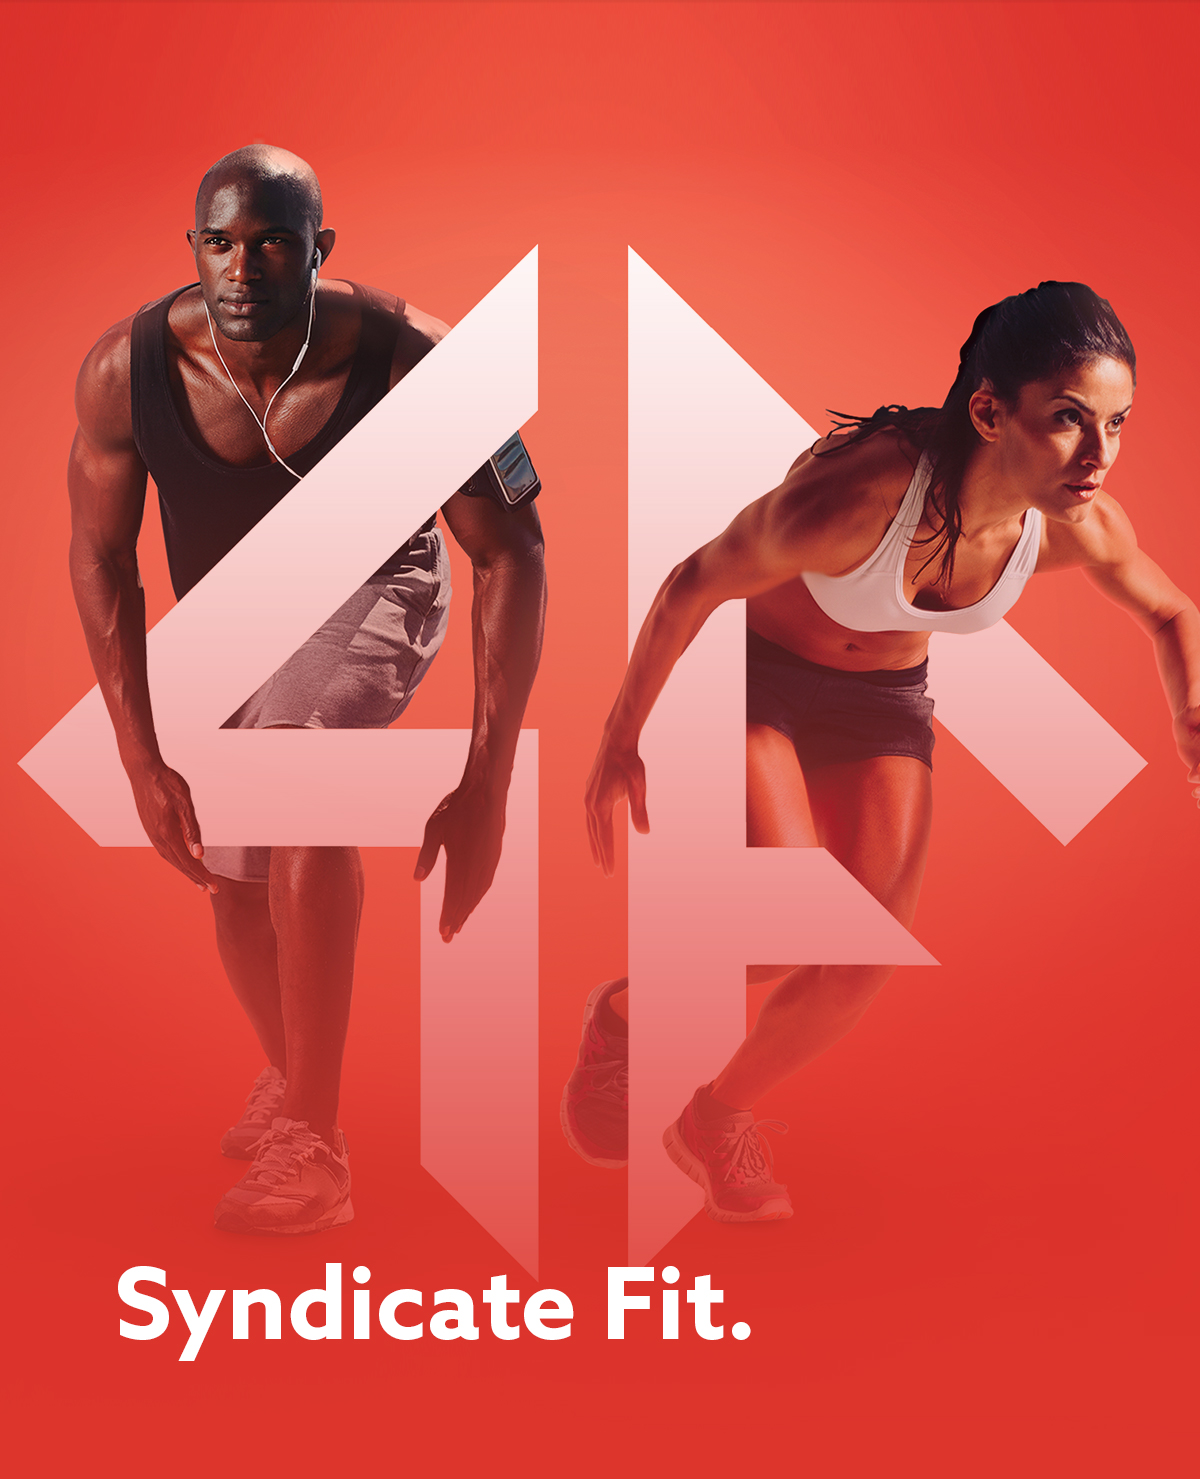 Syndicate Fit